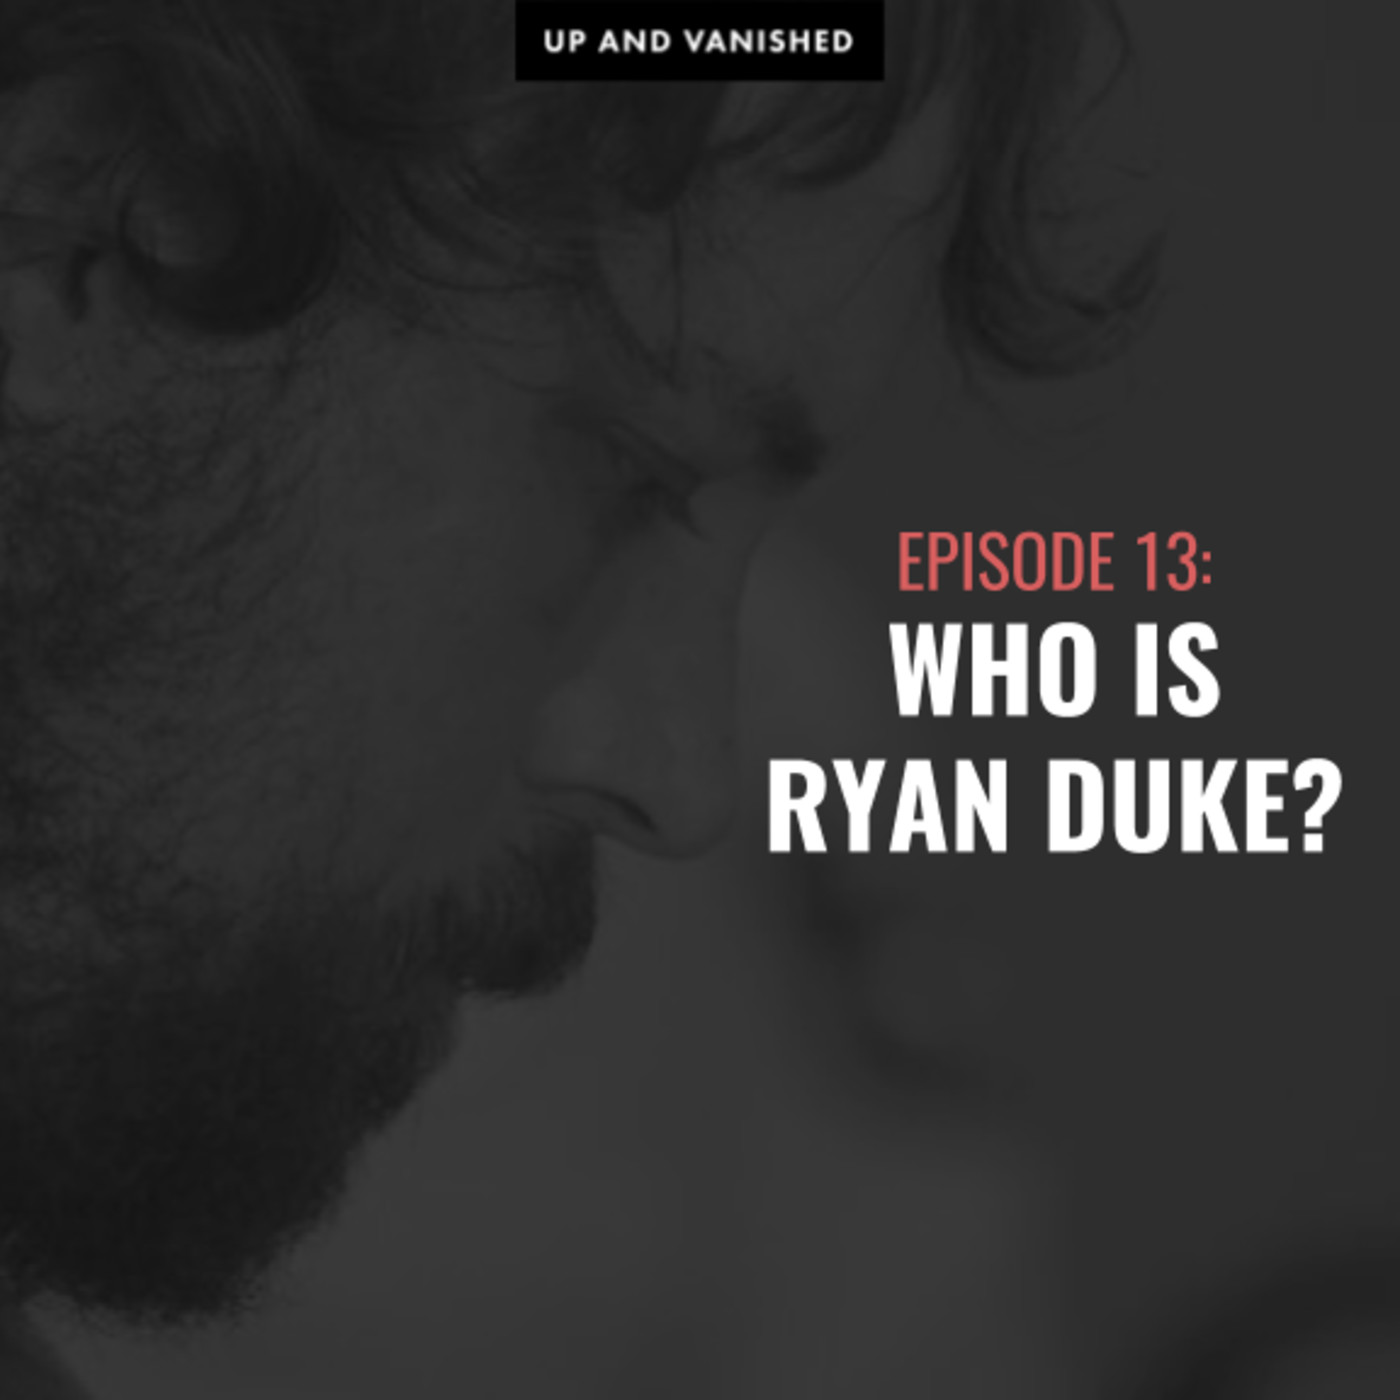 S1E13: Who is Ryan Duke?